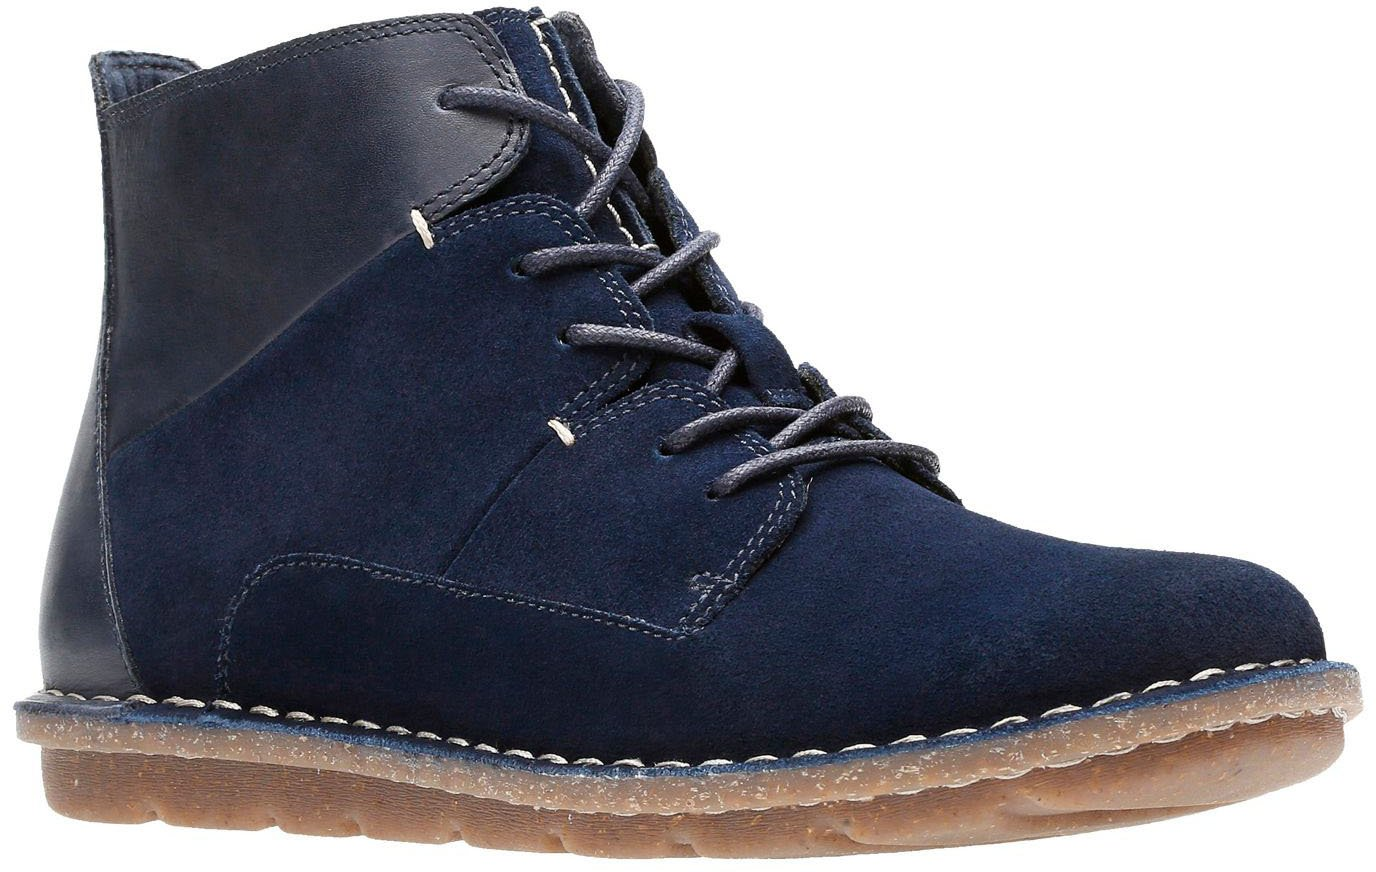 Clarks - Womens Tamitha C/D Key Low Boot B07765GXM3 8.5 C/D Tamitha US|Navy c71b33